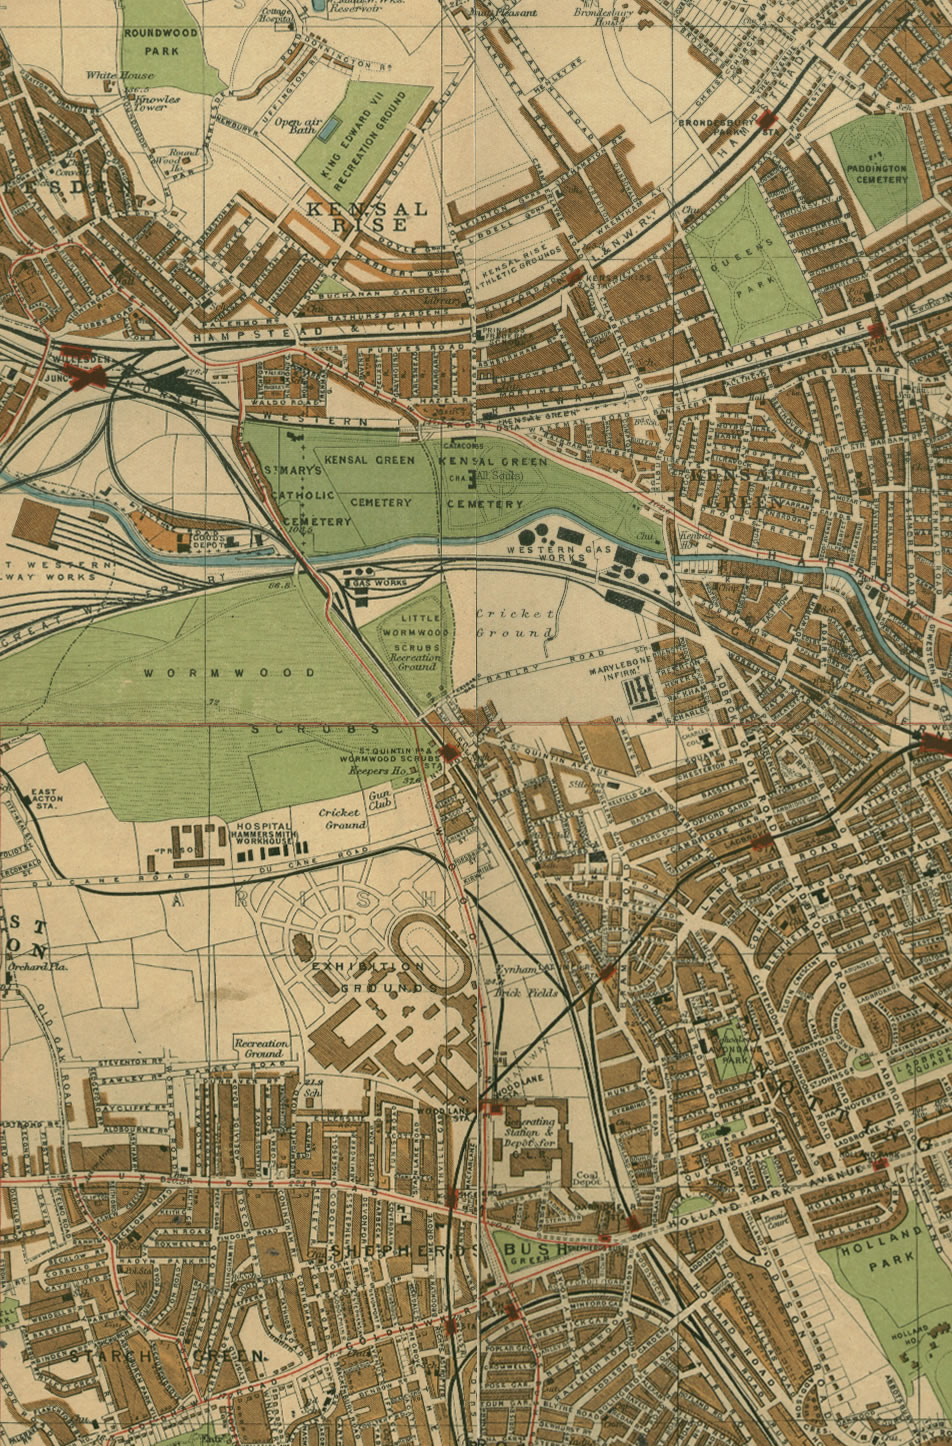 Shepherds Bush to Kensal Rise - from a Phillips atlas 1920's